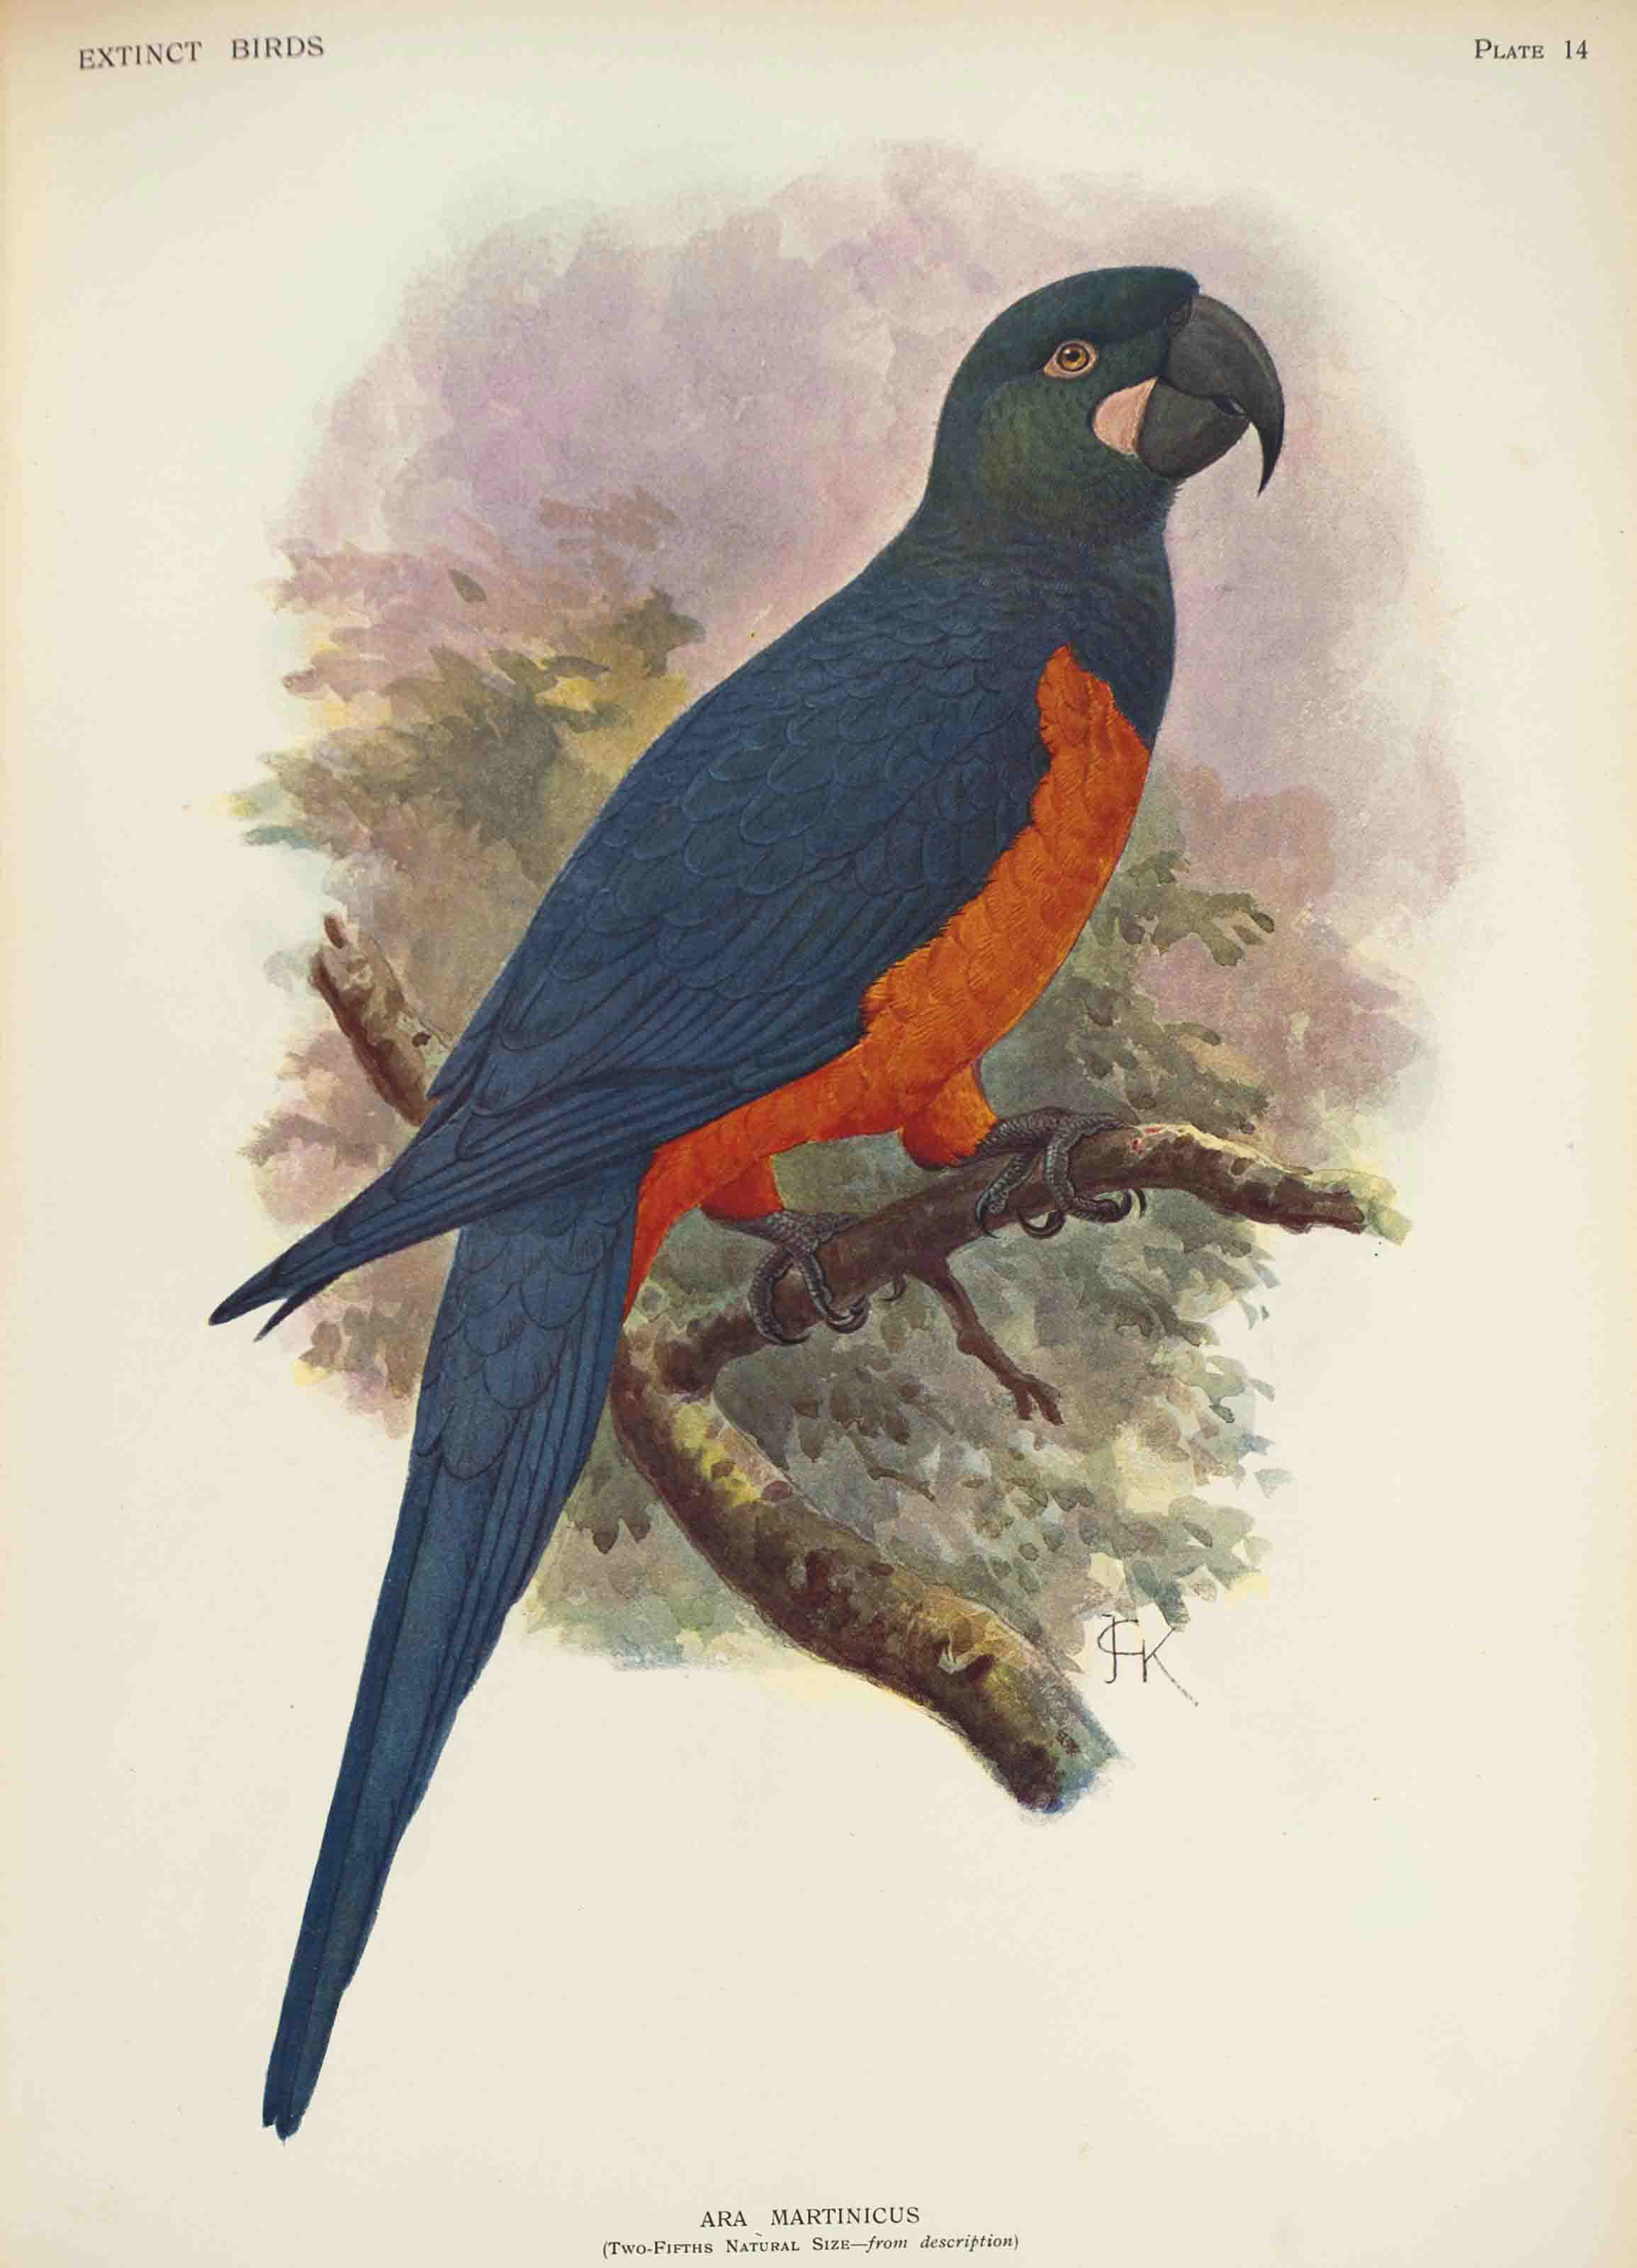 ROTHSCHILD, Lionel Walter, Baron (1868-1937). Extinct Birds. London: Hutchinson, 1907. 4° (374 x 280mm). Half-title, 45 chromolithographic plates after Keulemans, Lodge, H. Grönvold, J. Smit and F.W. Frohawk, and 4 uncoloured plates. (Light spotting to text and marginal on plates.) Contemporary green half morocco (extremities rubbed, spine sunfaded). Provenance: Walter Rothschild (1907 presentation inscription to:) -- N. Charles Rothschild (book label) -- Miriam Rothschild (1972 presentation inscription to:) -- Phyllis Thomas.